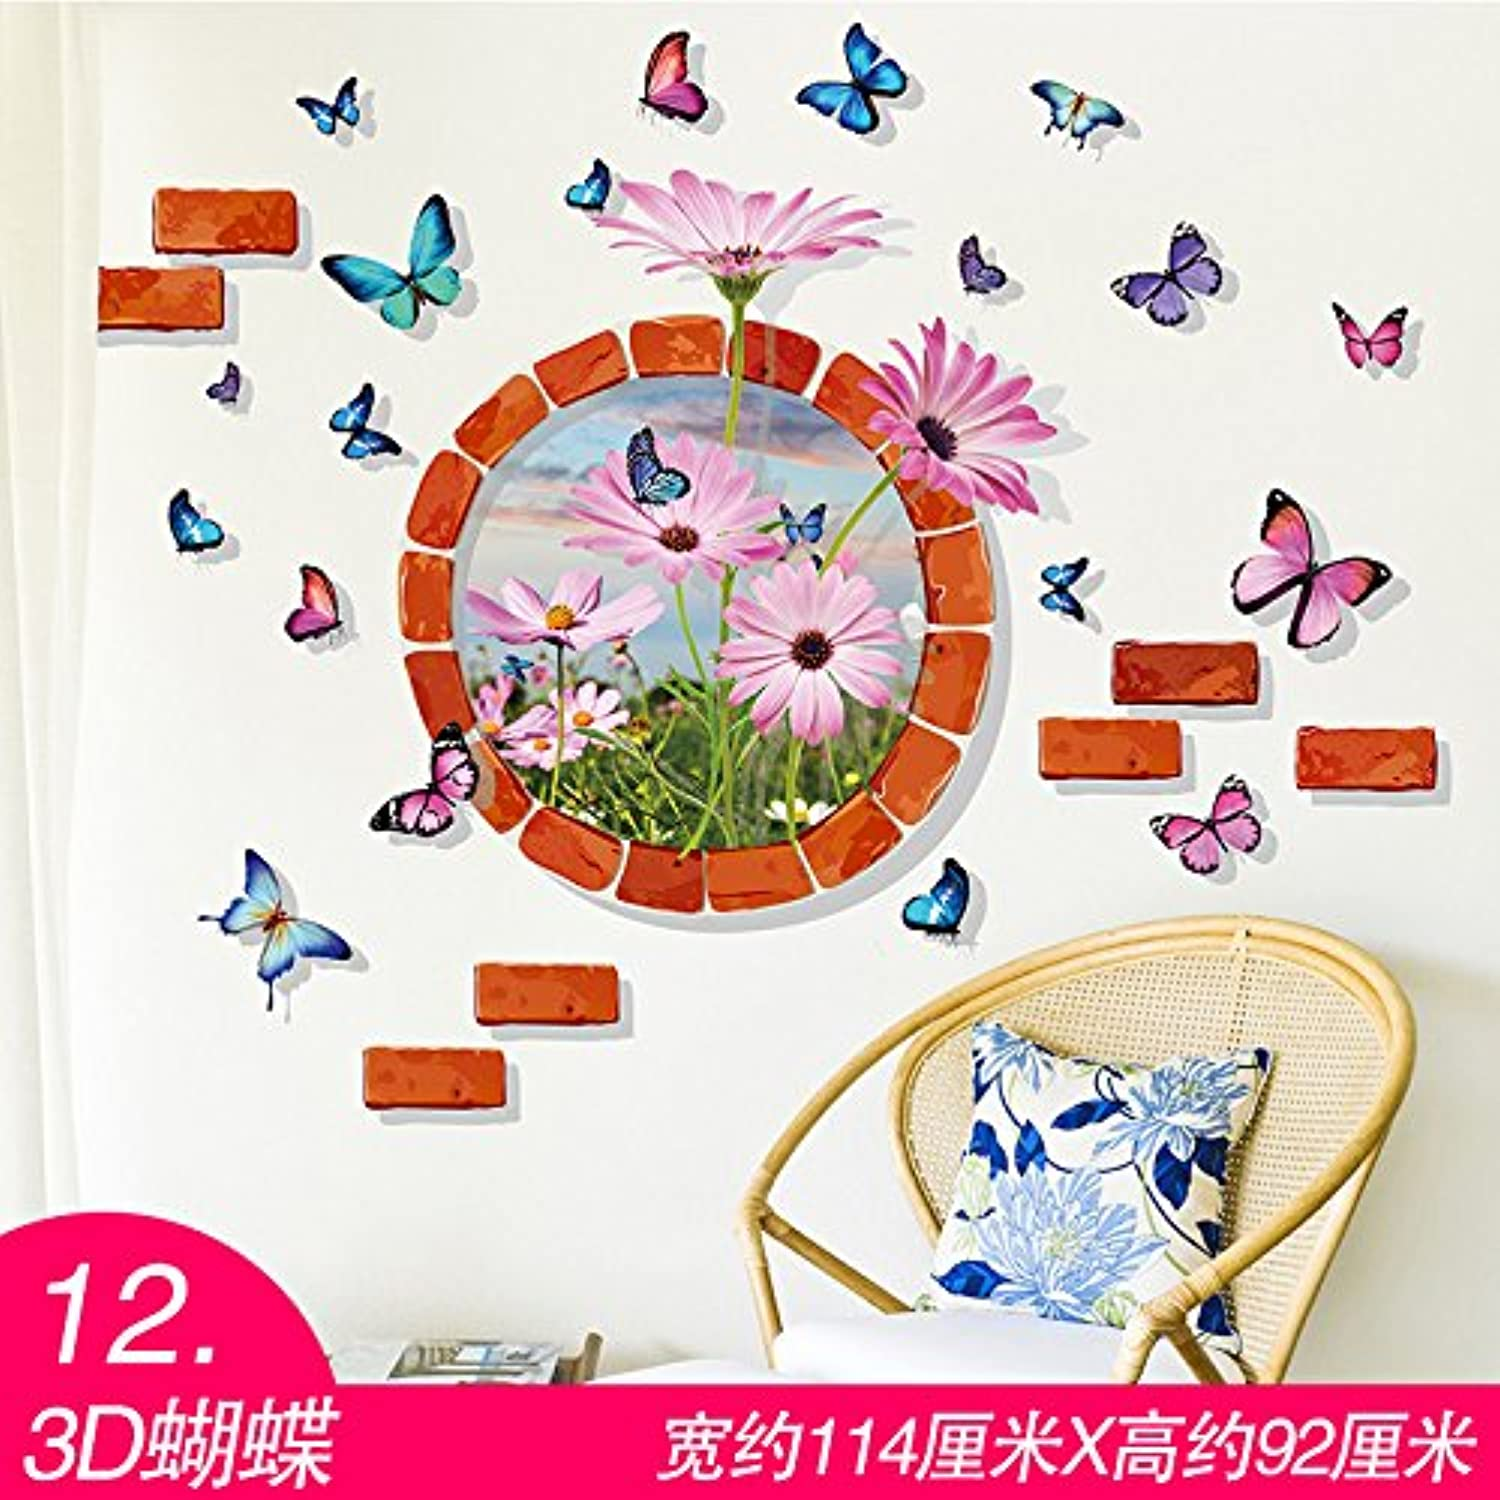 Znzbzt 3D Wallpaper self Adhesive Bedroom Wall Decoration Wall Sticker Wall Posters, Butterfly